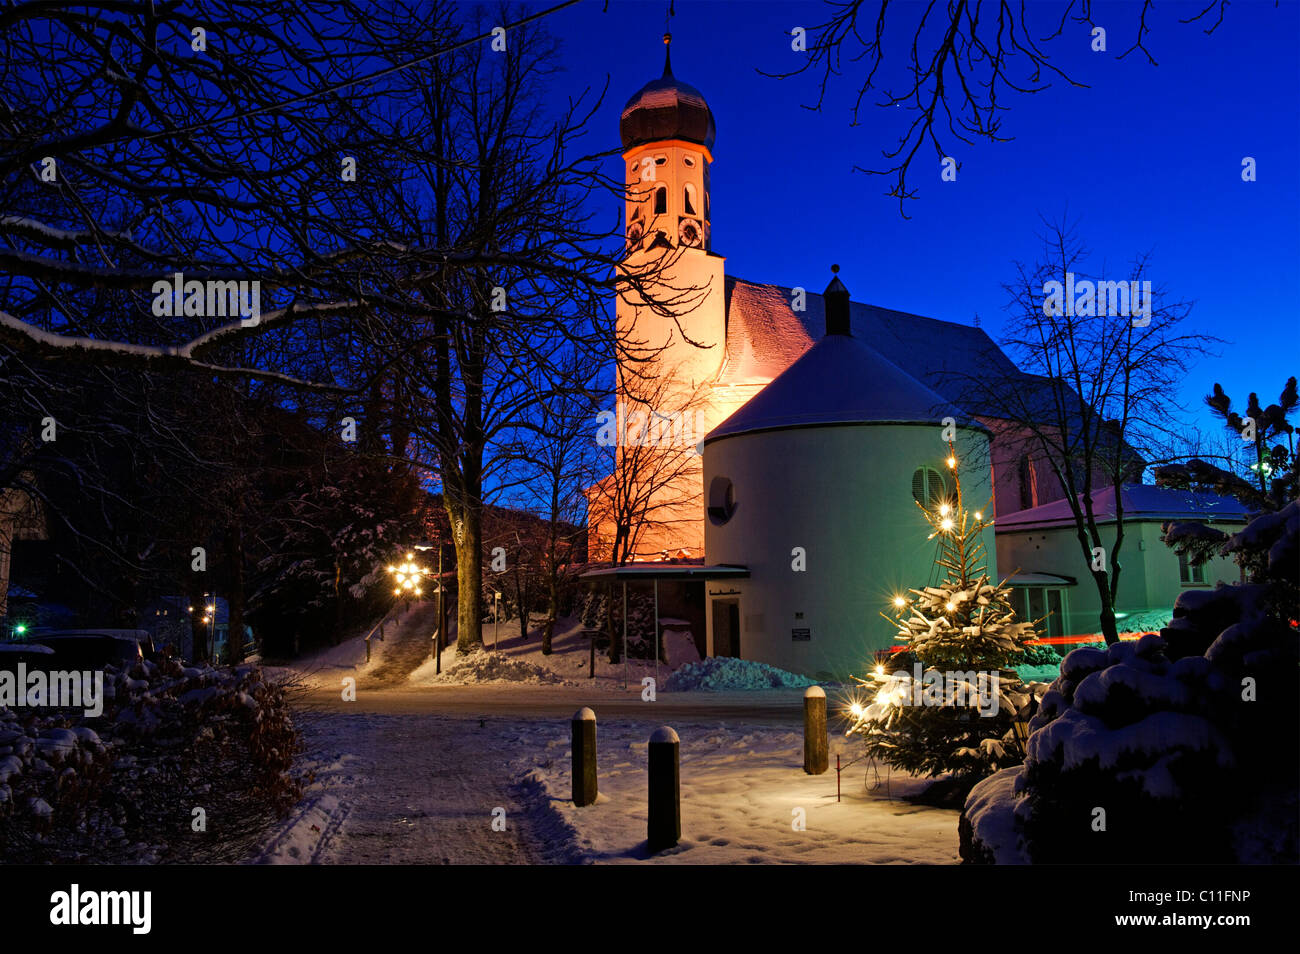 Keramik Bad Heilbrunn Bad Christmas Decorations Stock Photos Bad Christmas